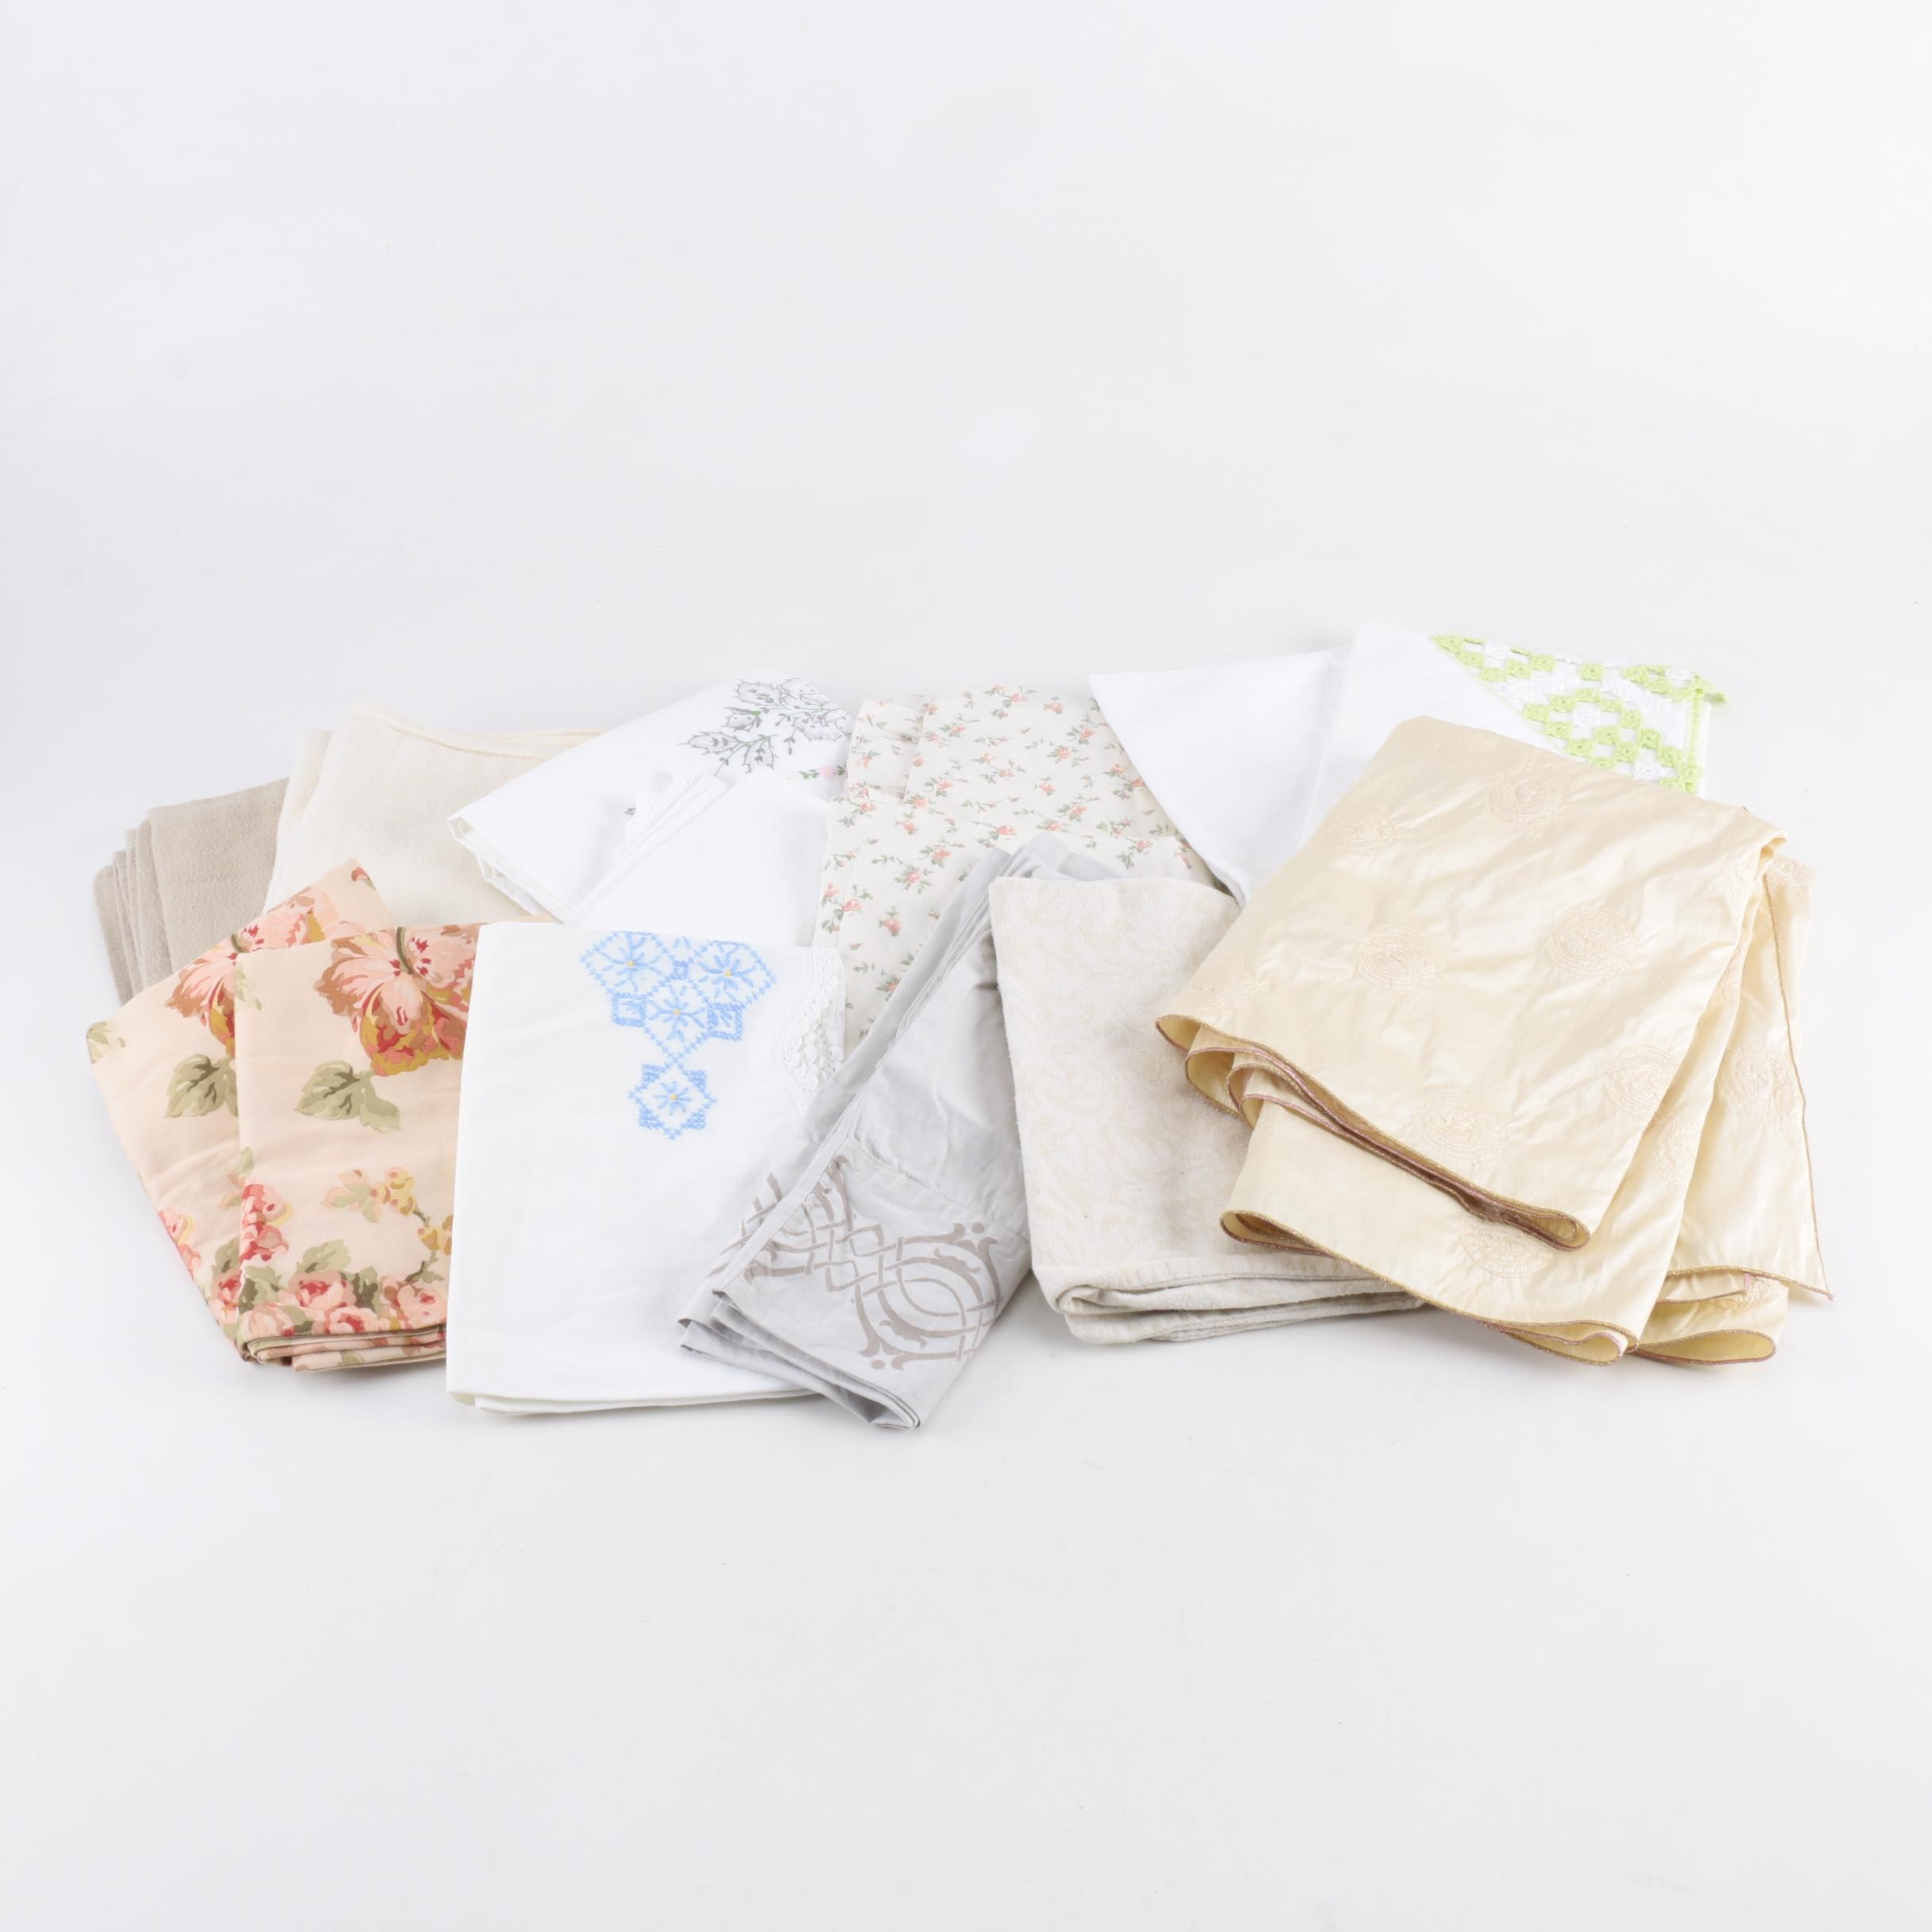 Vintage Pillowcases and other Bed Linens